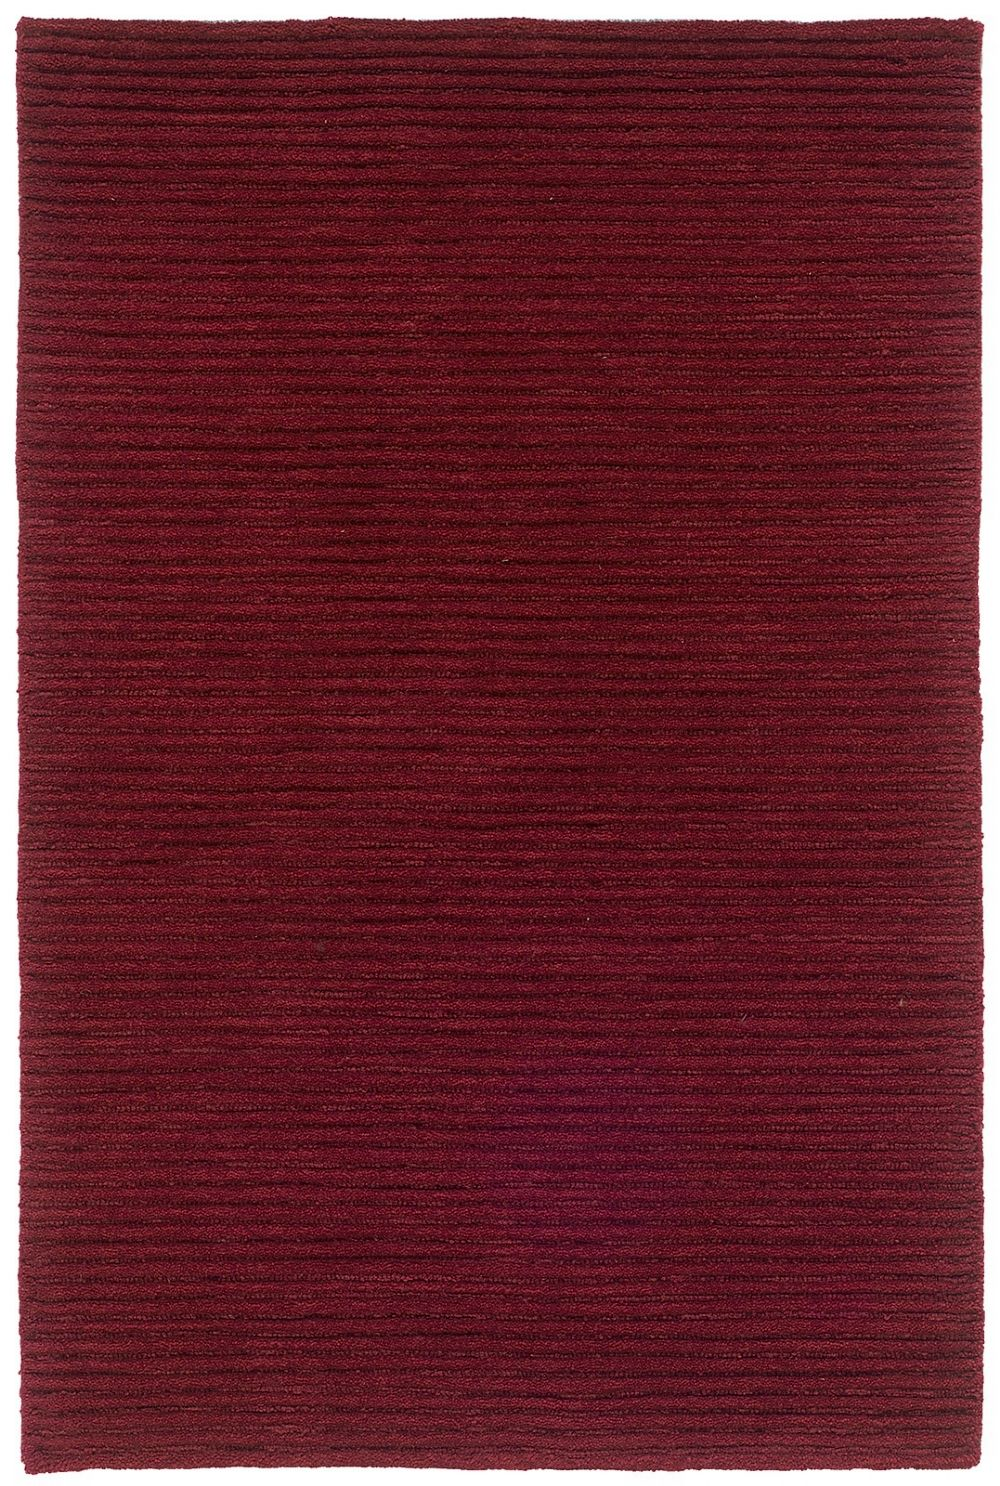 oriental weavers bauhaus solid/striped area rug collection